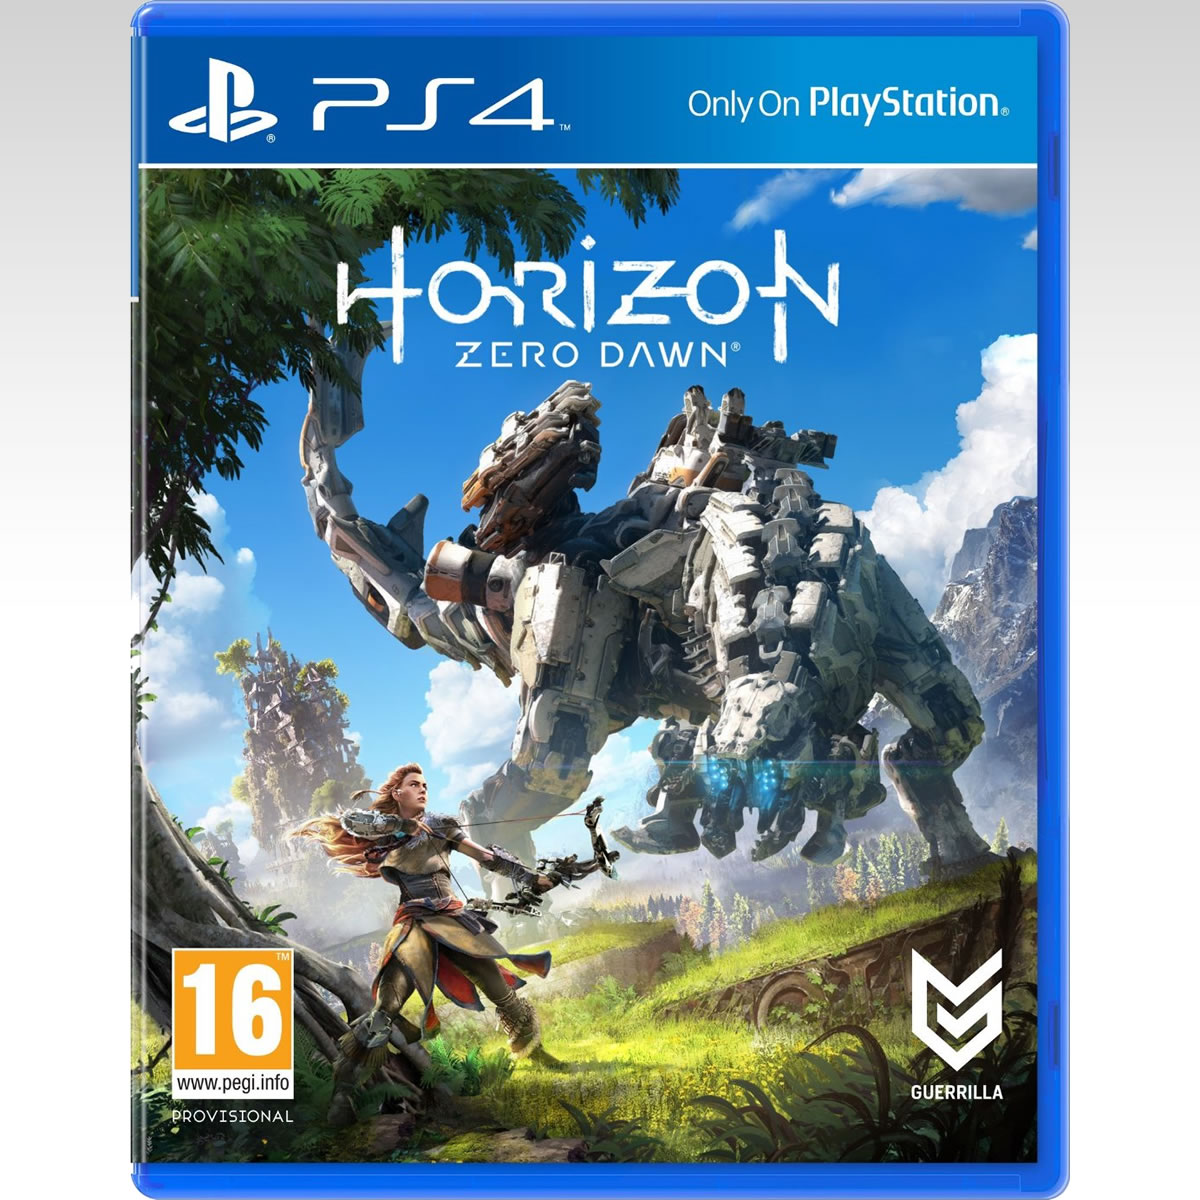 HORIZON: ZERO DAWN - Standard Edition (PS4)